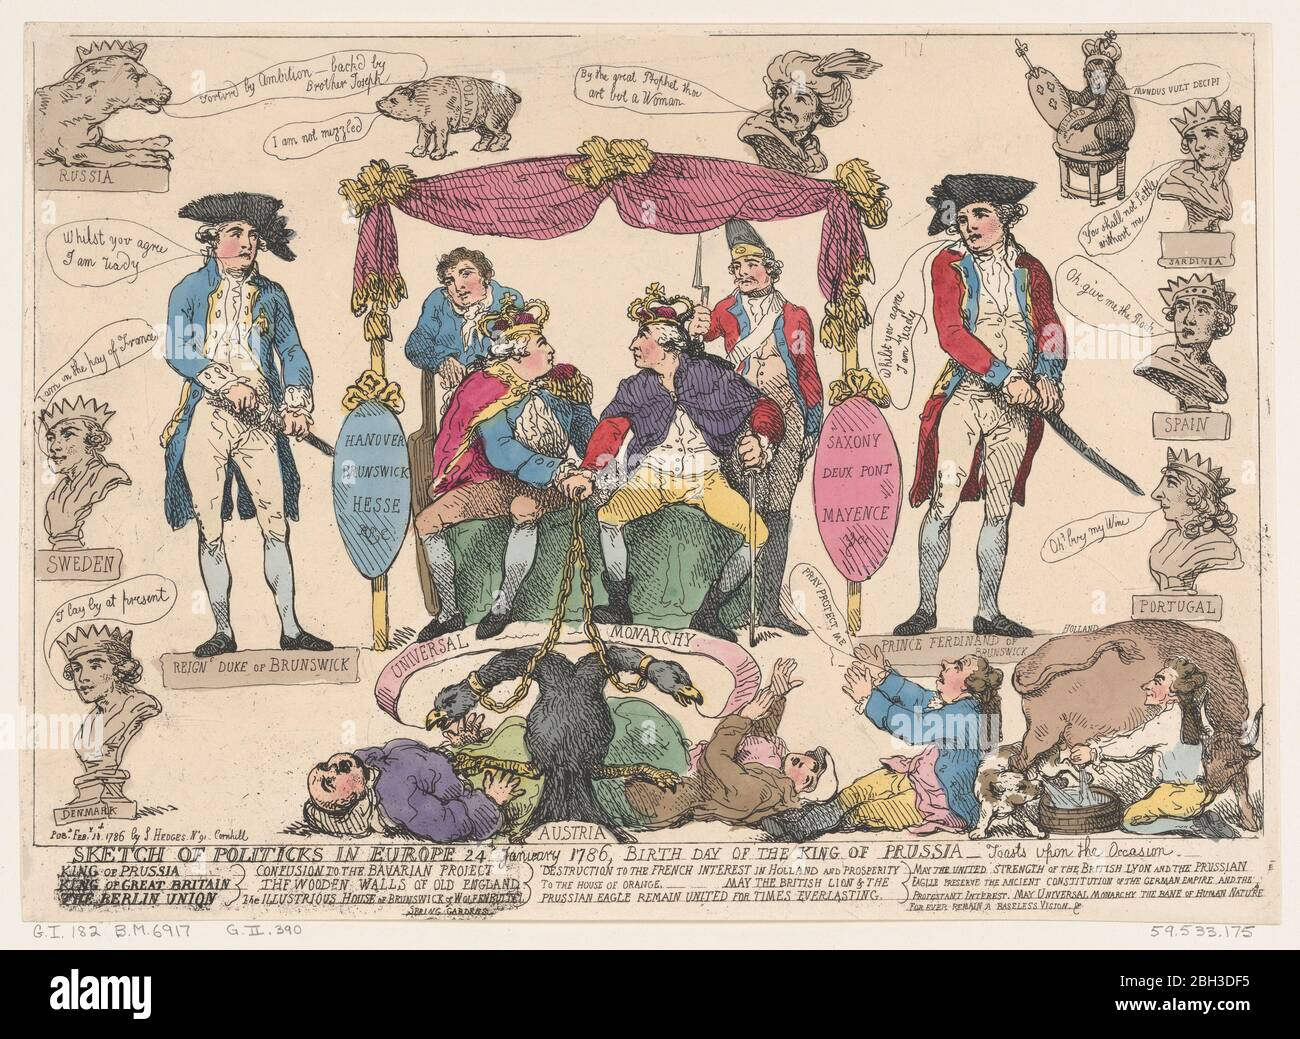 Sketch of Politiks in Europe, Birthday of the King of Prussia, February 10, 1786. Stock Photo